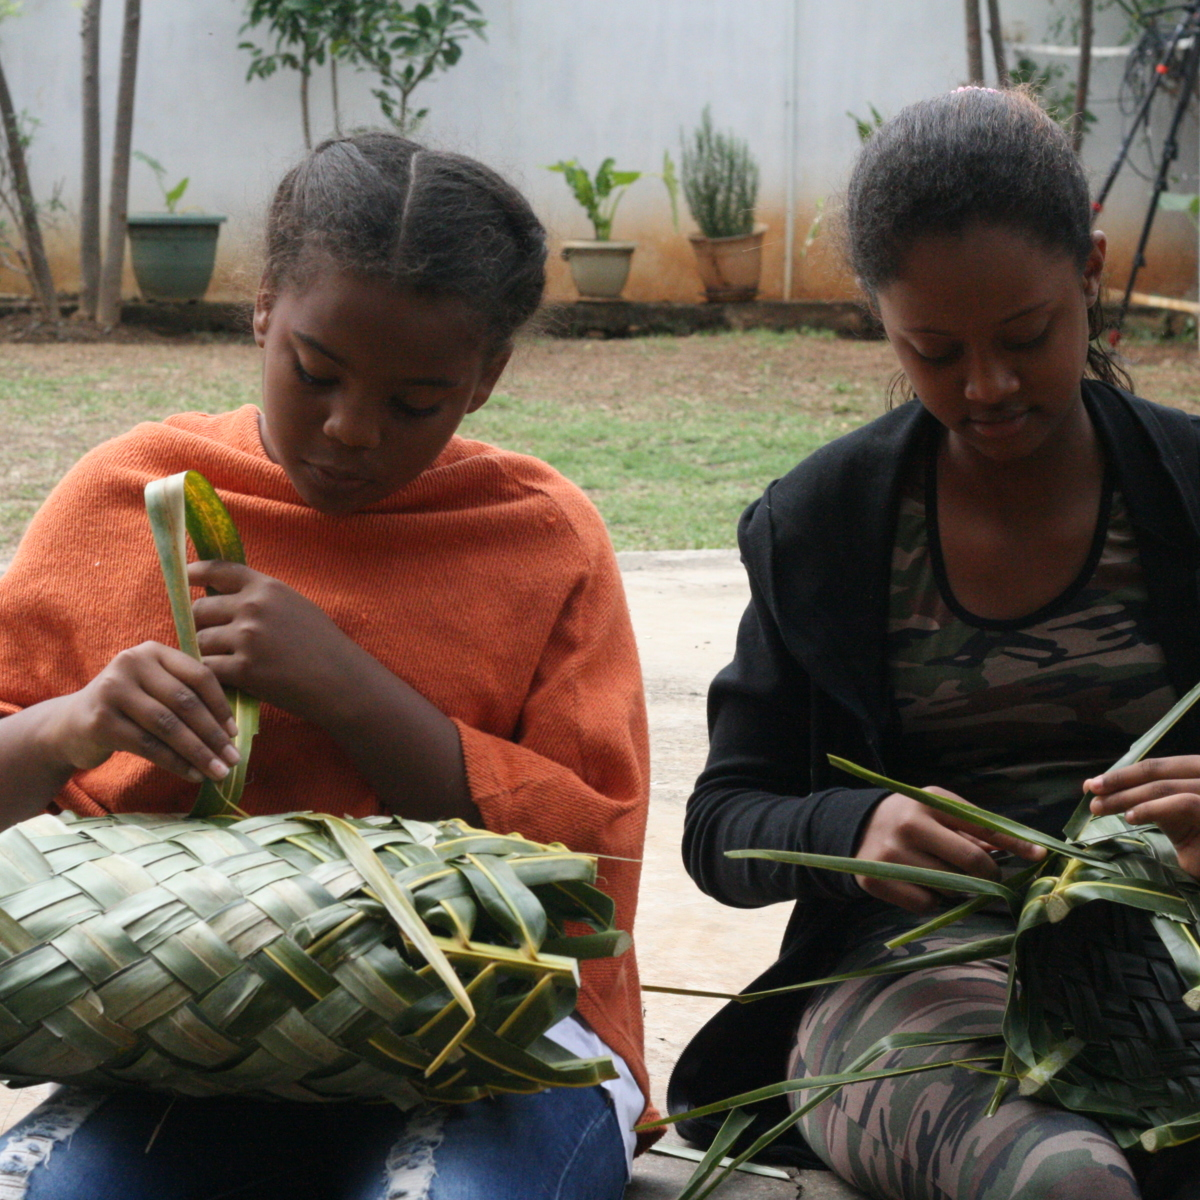 Basket weaving with coconut fronds